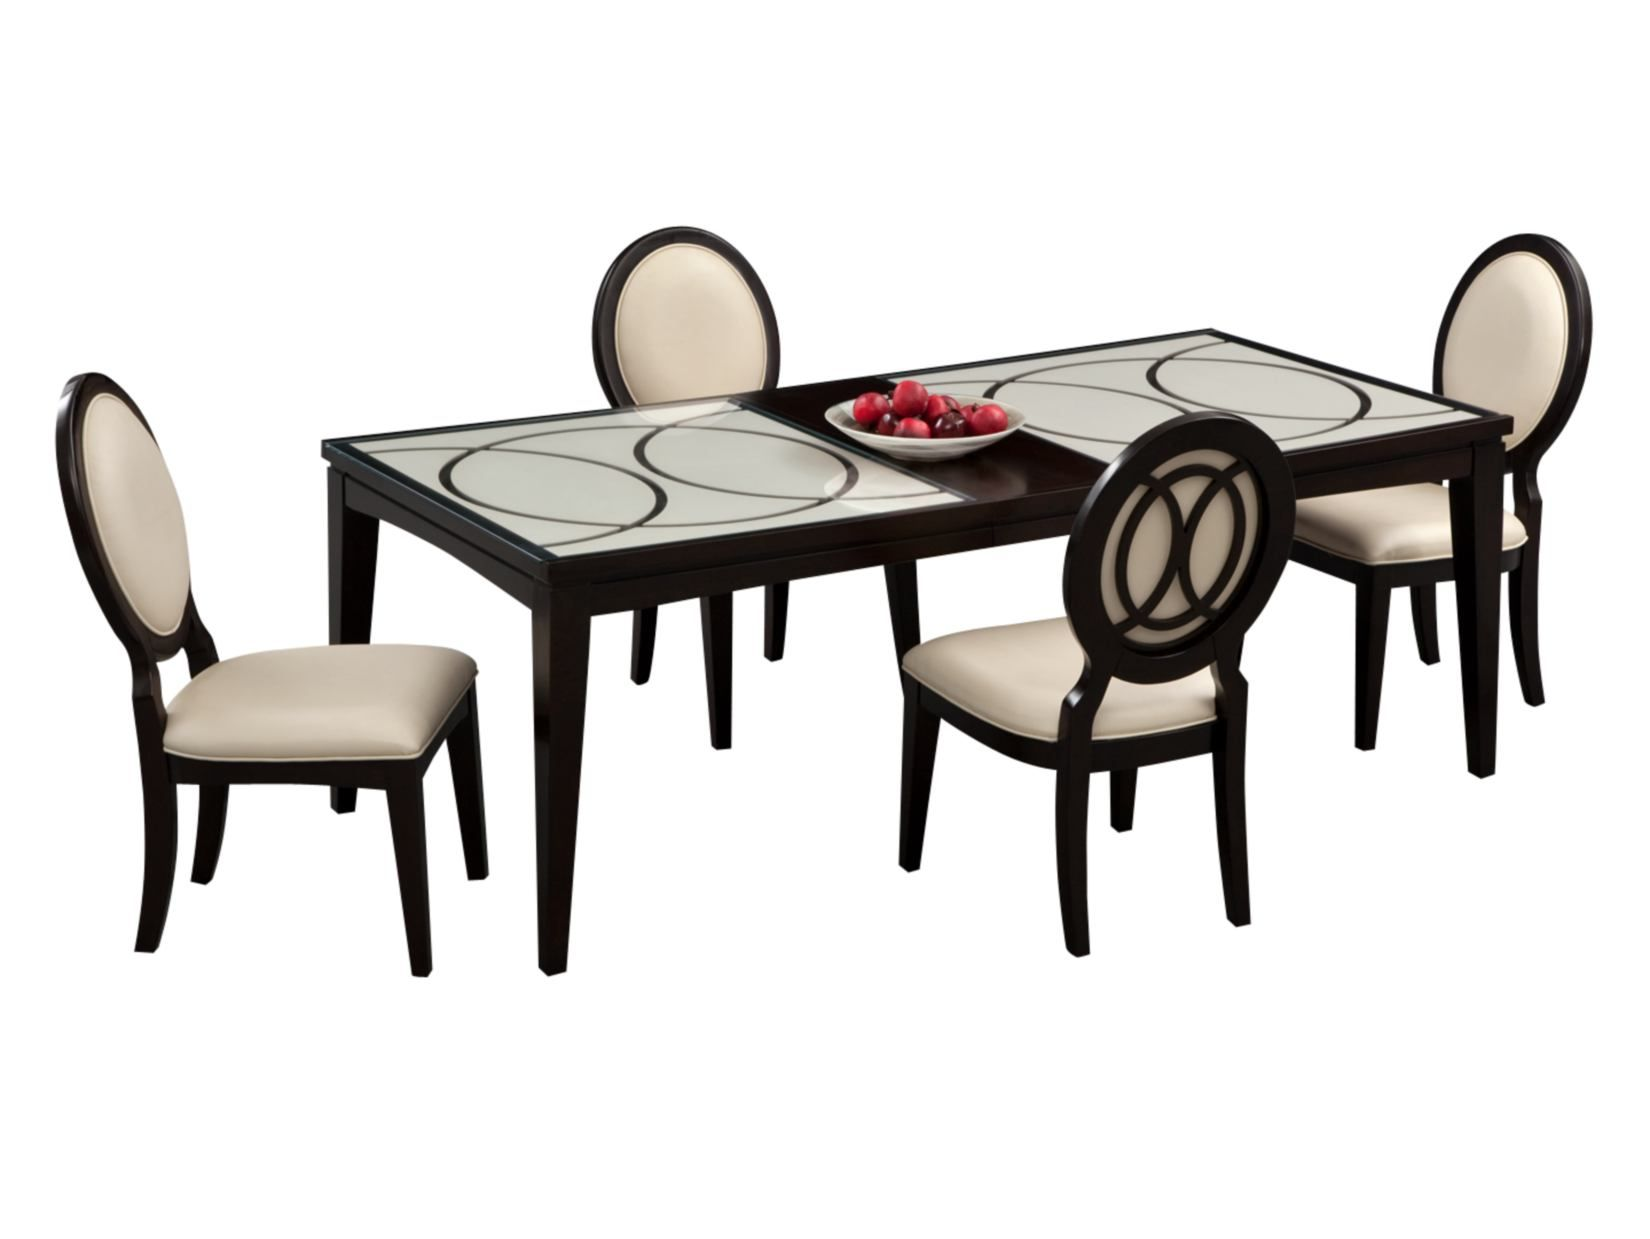 The Cosmo Dining Group Incredibly Sophisticated And Elegant This 5 Piece Package Includes A 72 X 40 Table Value City Furniture Furniture City Furniture